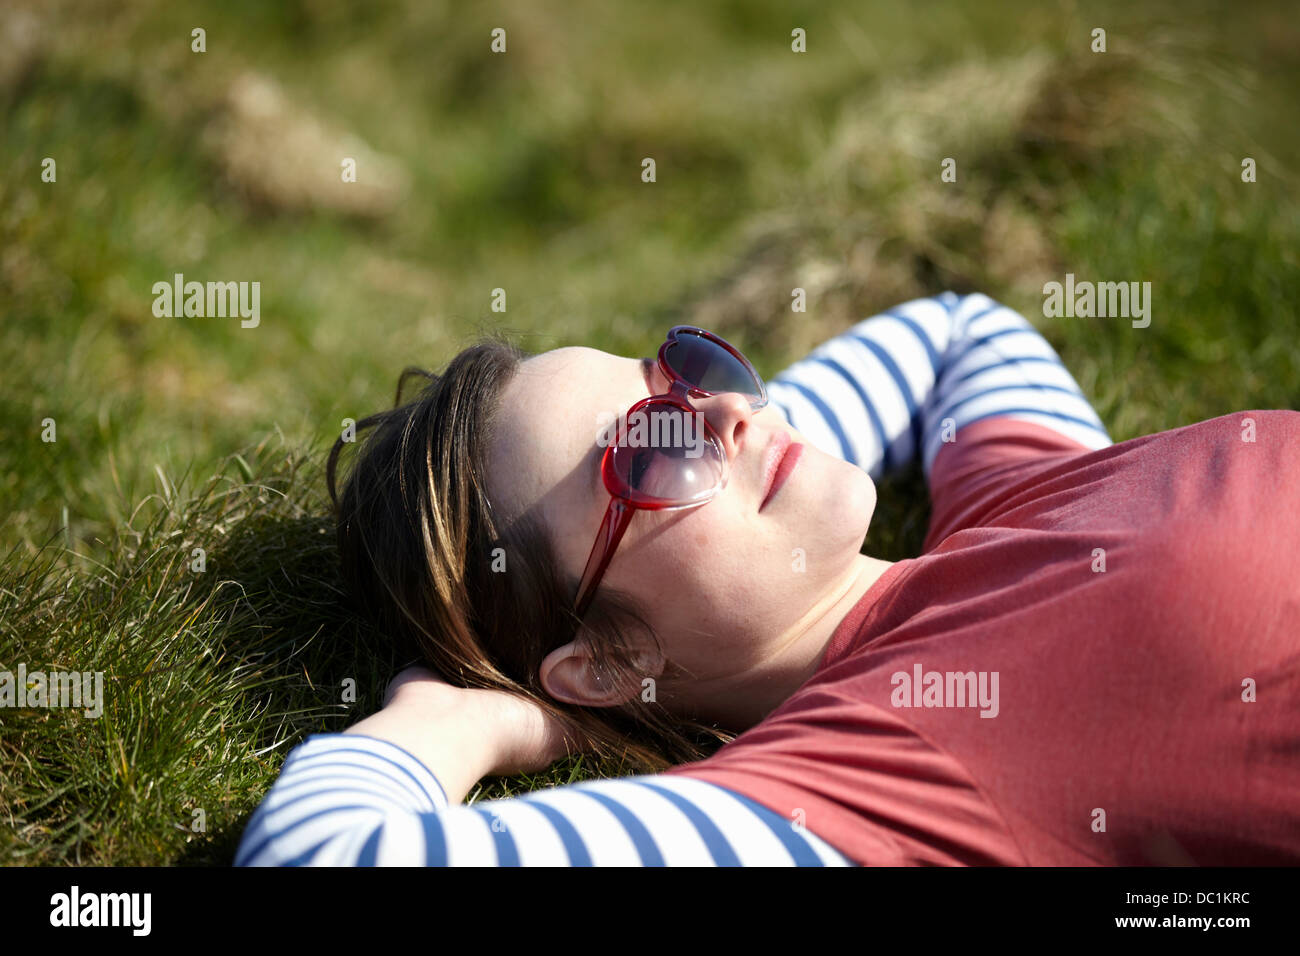 Young woman wearing heart shape sunglasses lying on grass - Stock Image